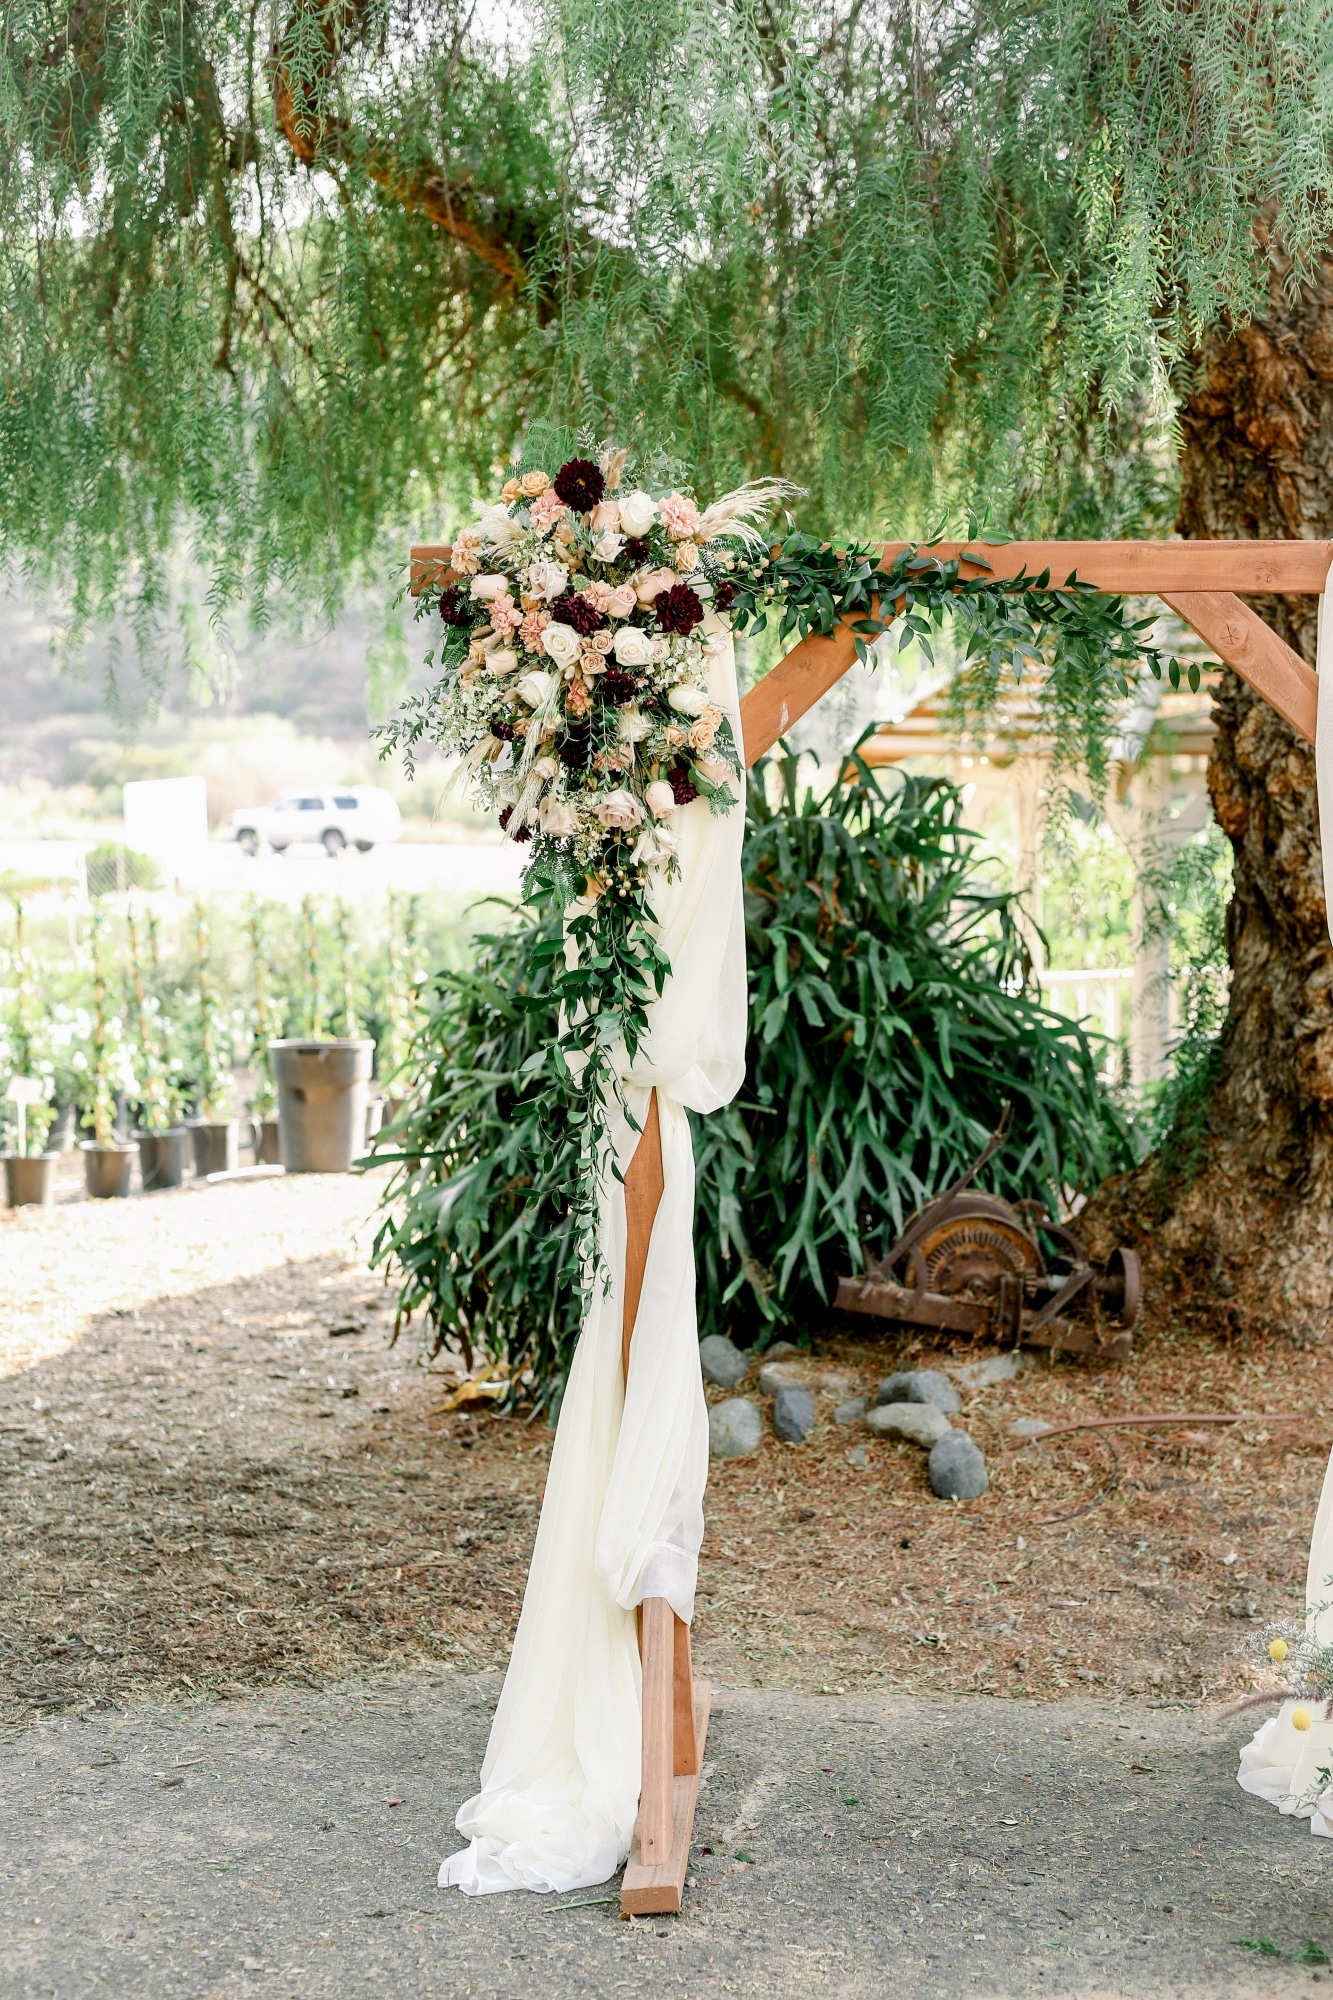 florals that decorate where the ceremony was